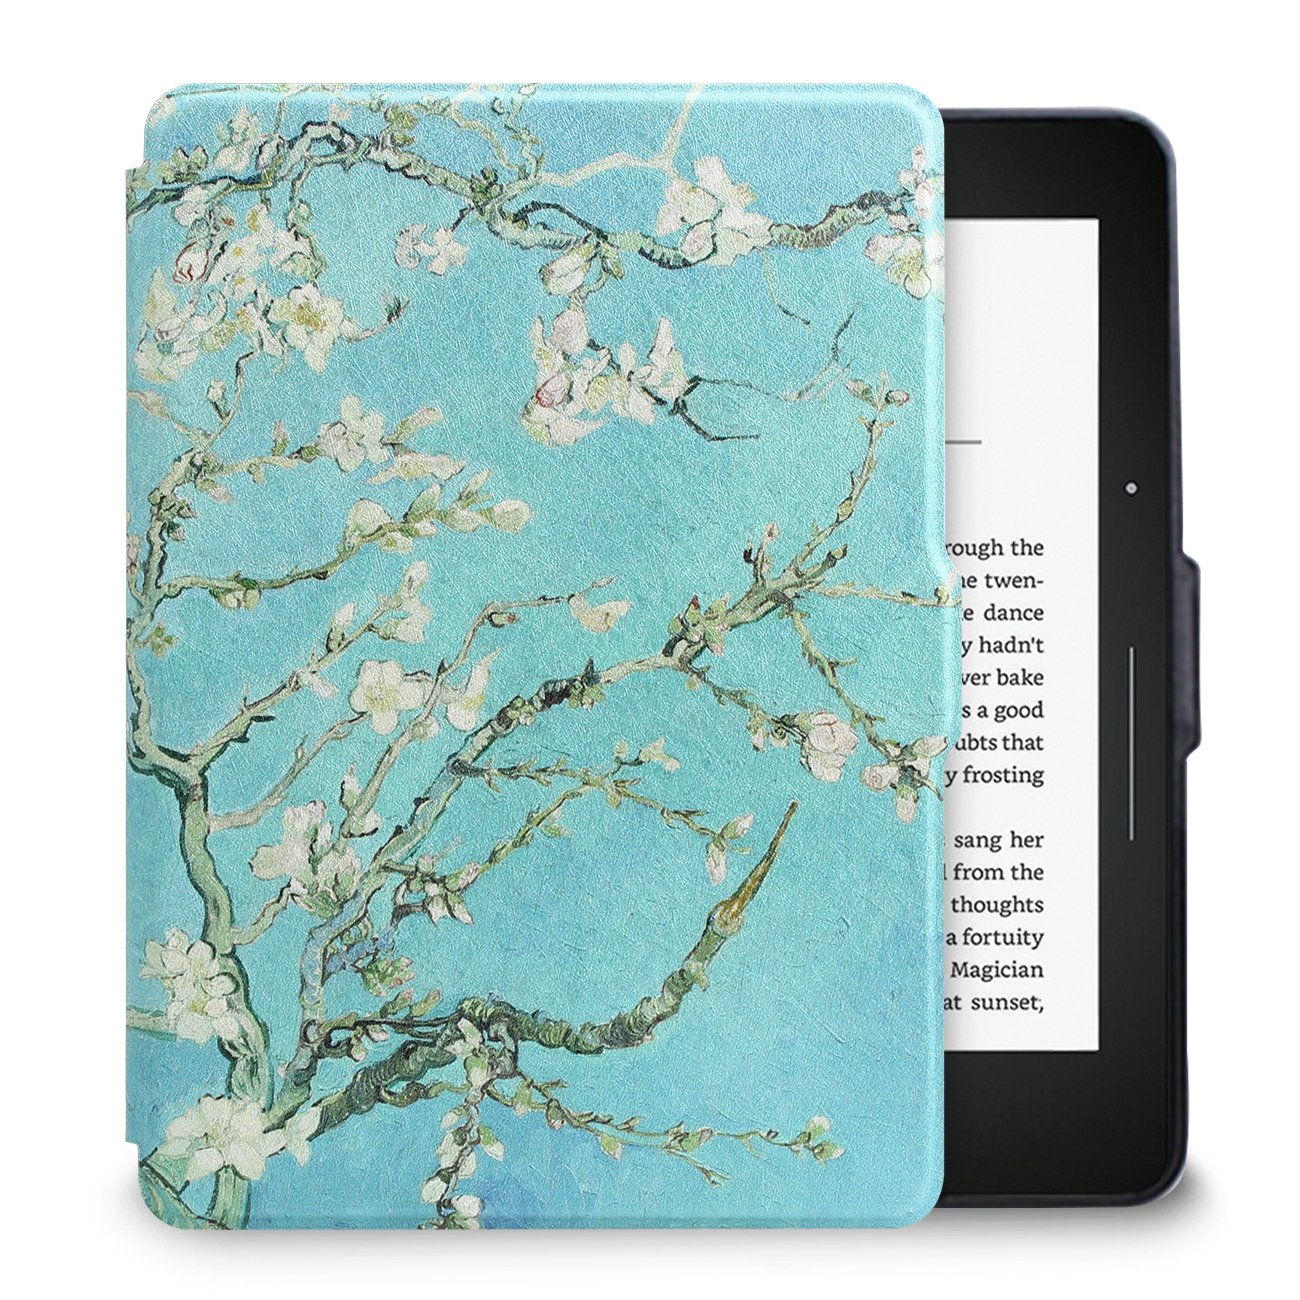 Walnew Protective case for Amazon Kindle Voyage(2014) The Thinnest and Lightest Colorful Painting PU Leather Cover with Auto Sleep/Wake Function,Tree and Flower